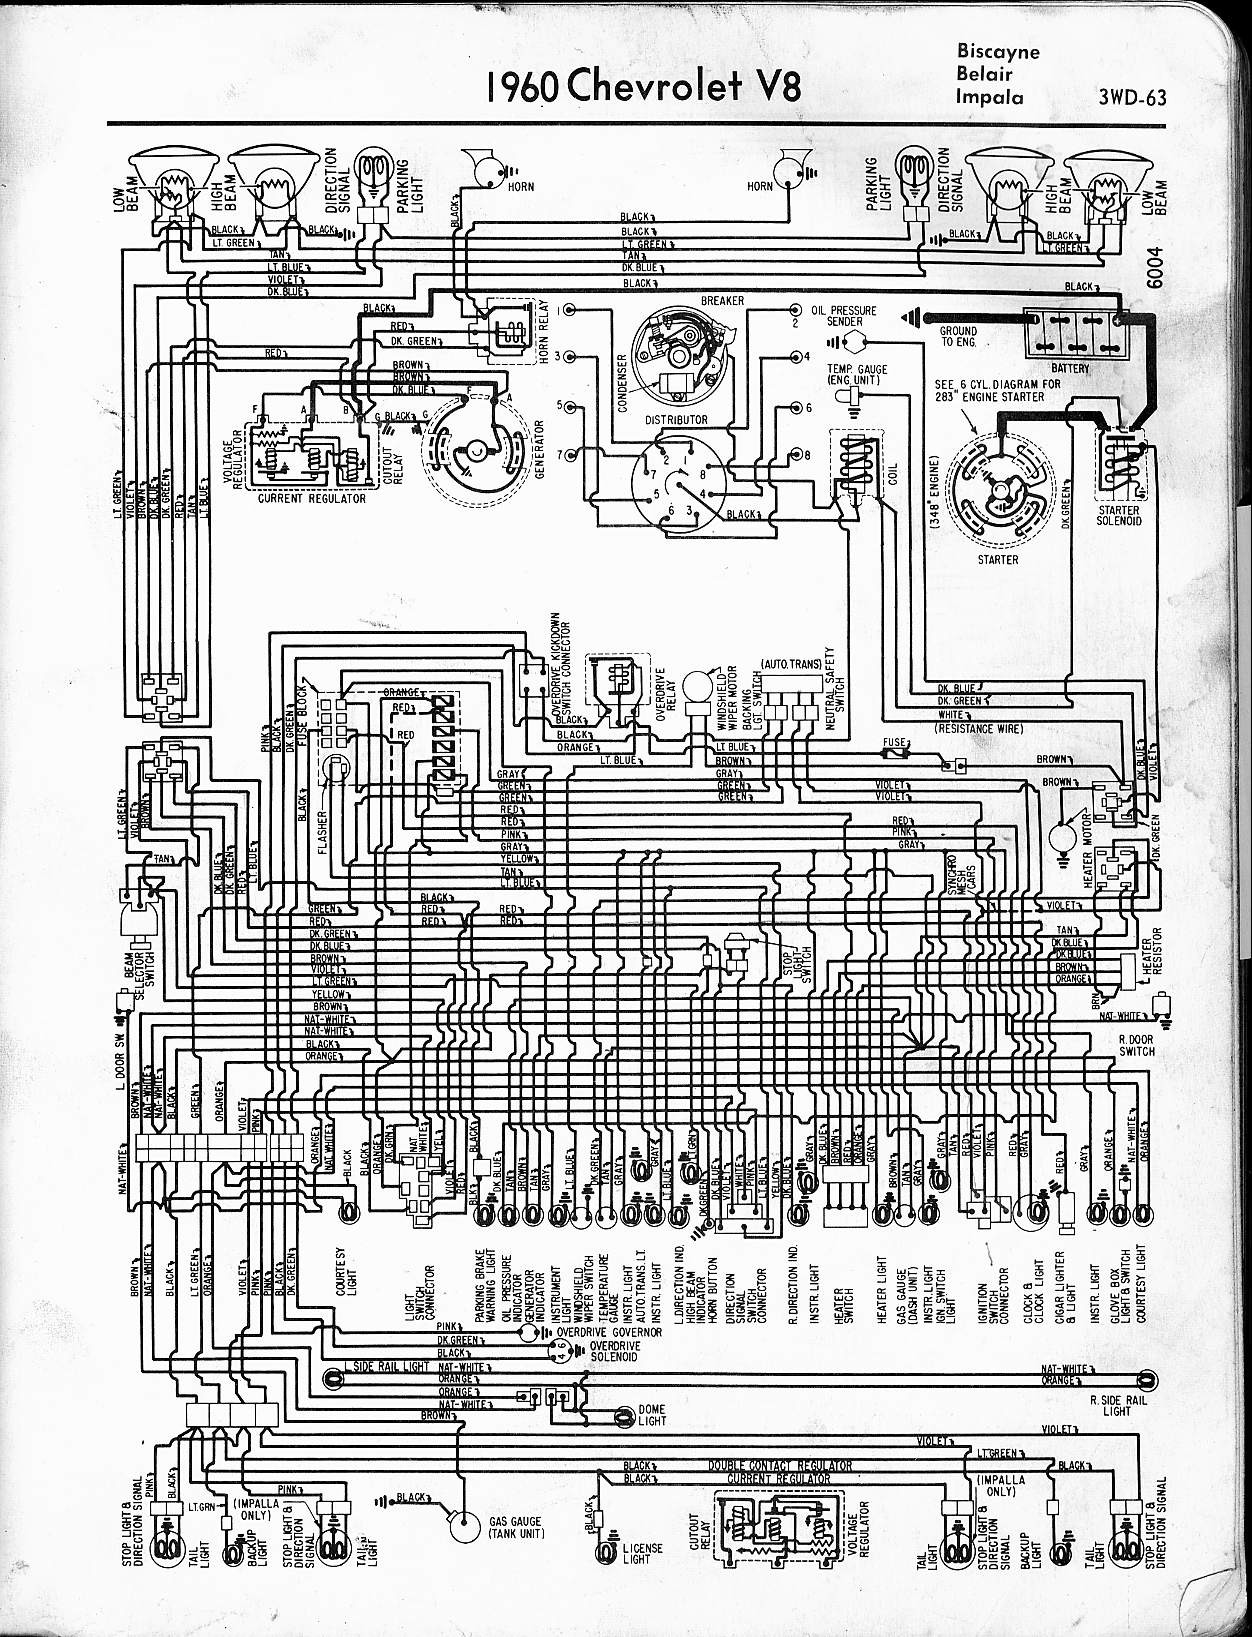 2004 chevy impala wiring diagram for gibson les paul guitar engine my